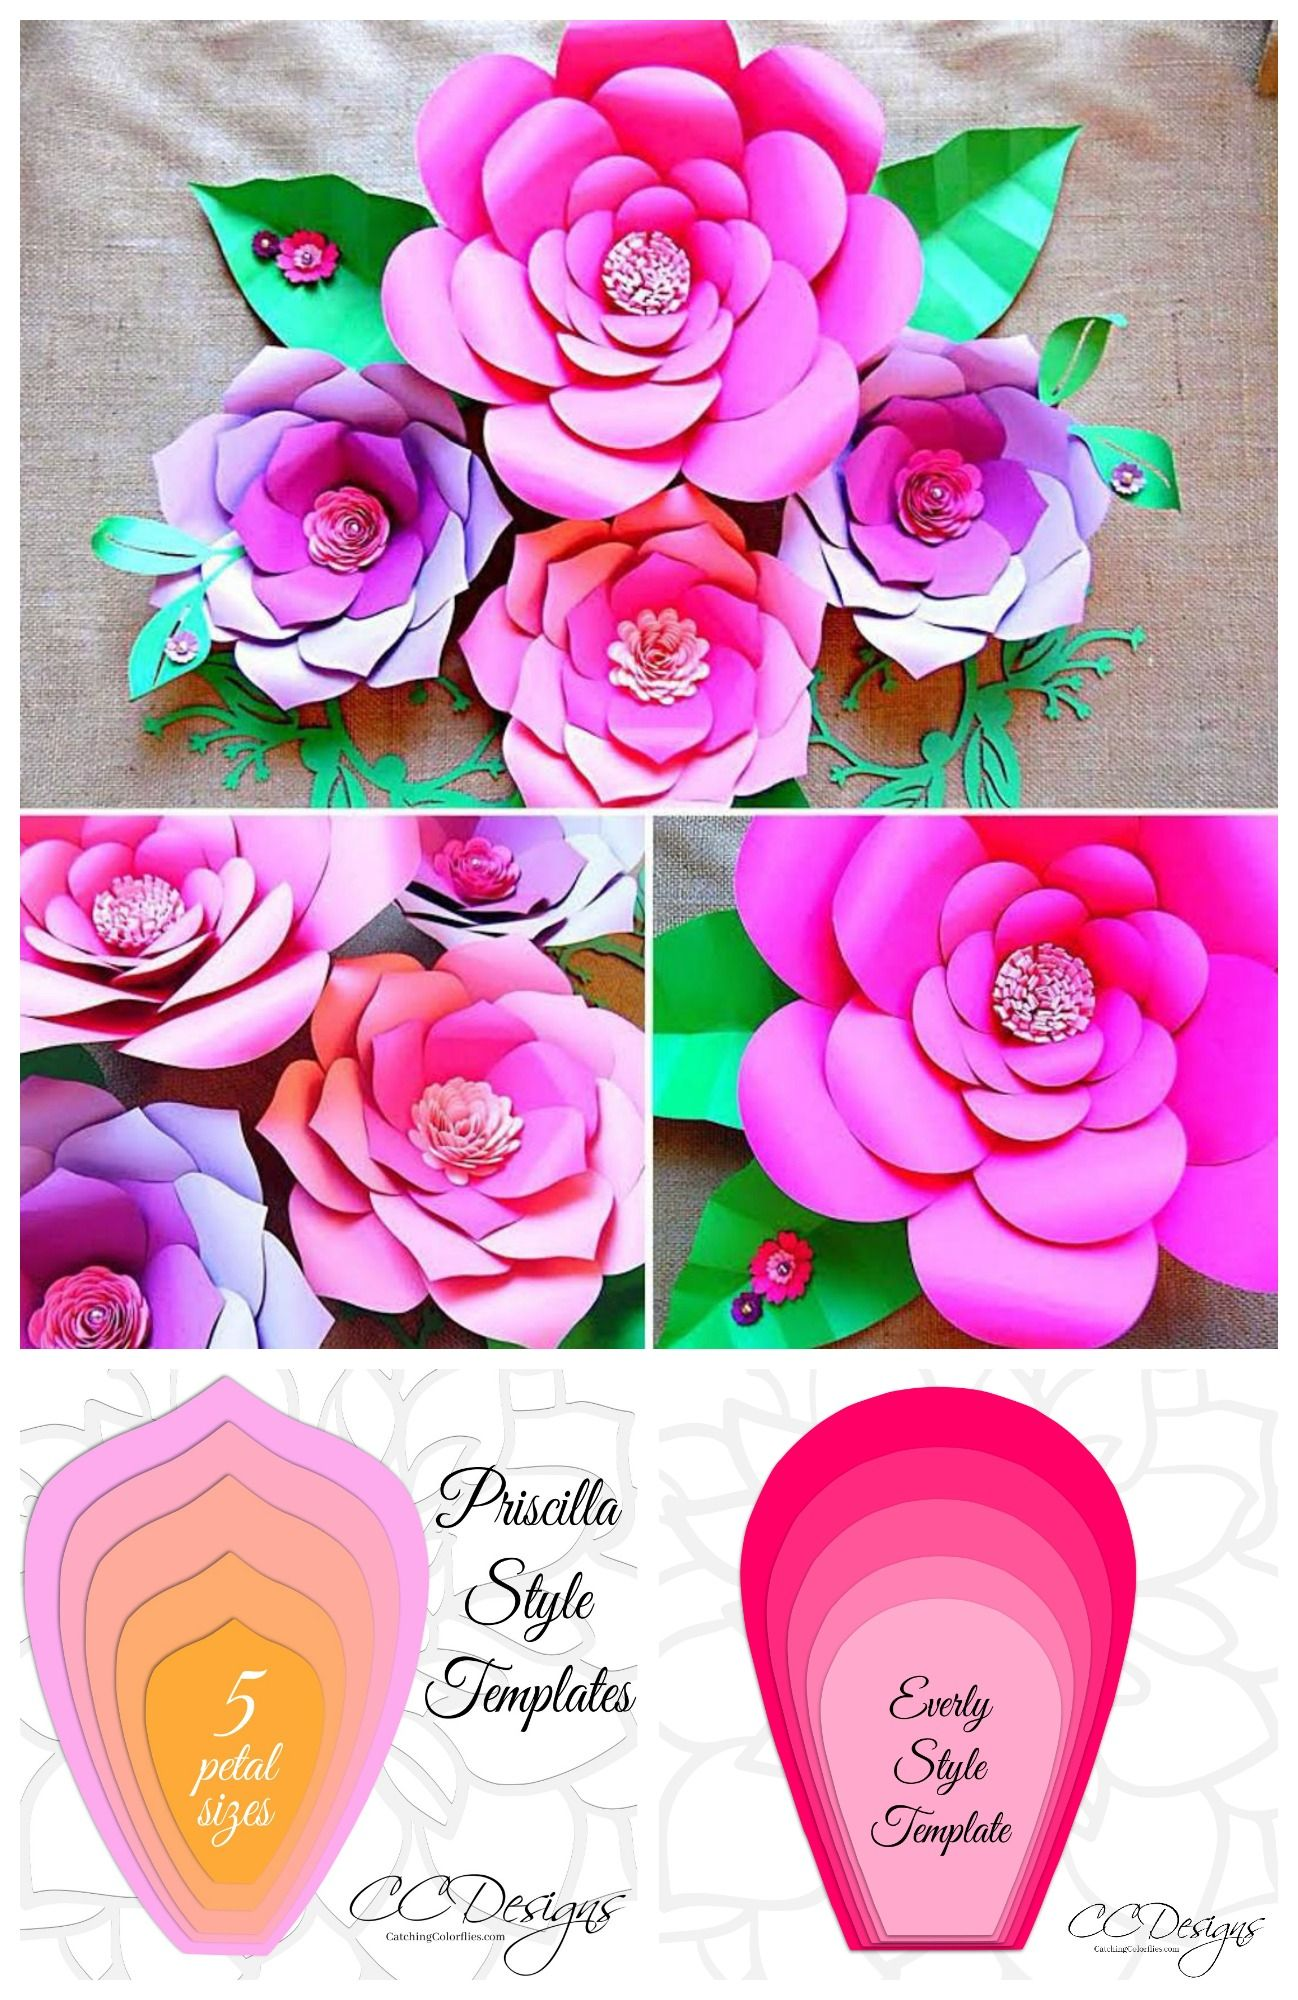 Easy Giant Paper Flower Templates - Printable PDF and SVG Flower Templates